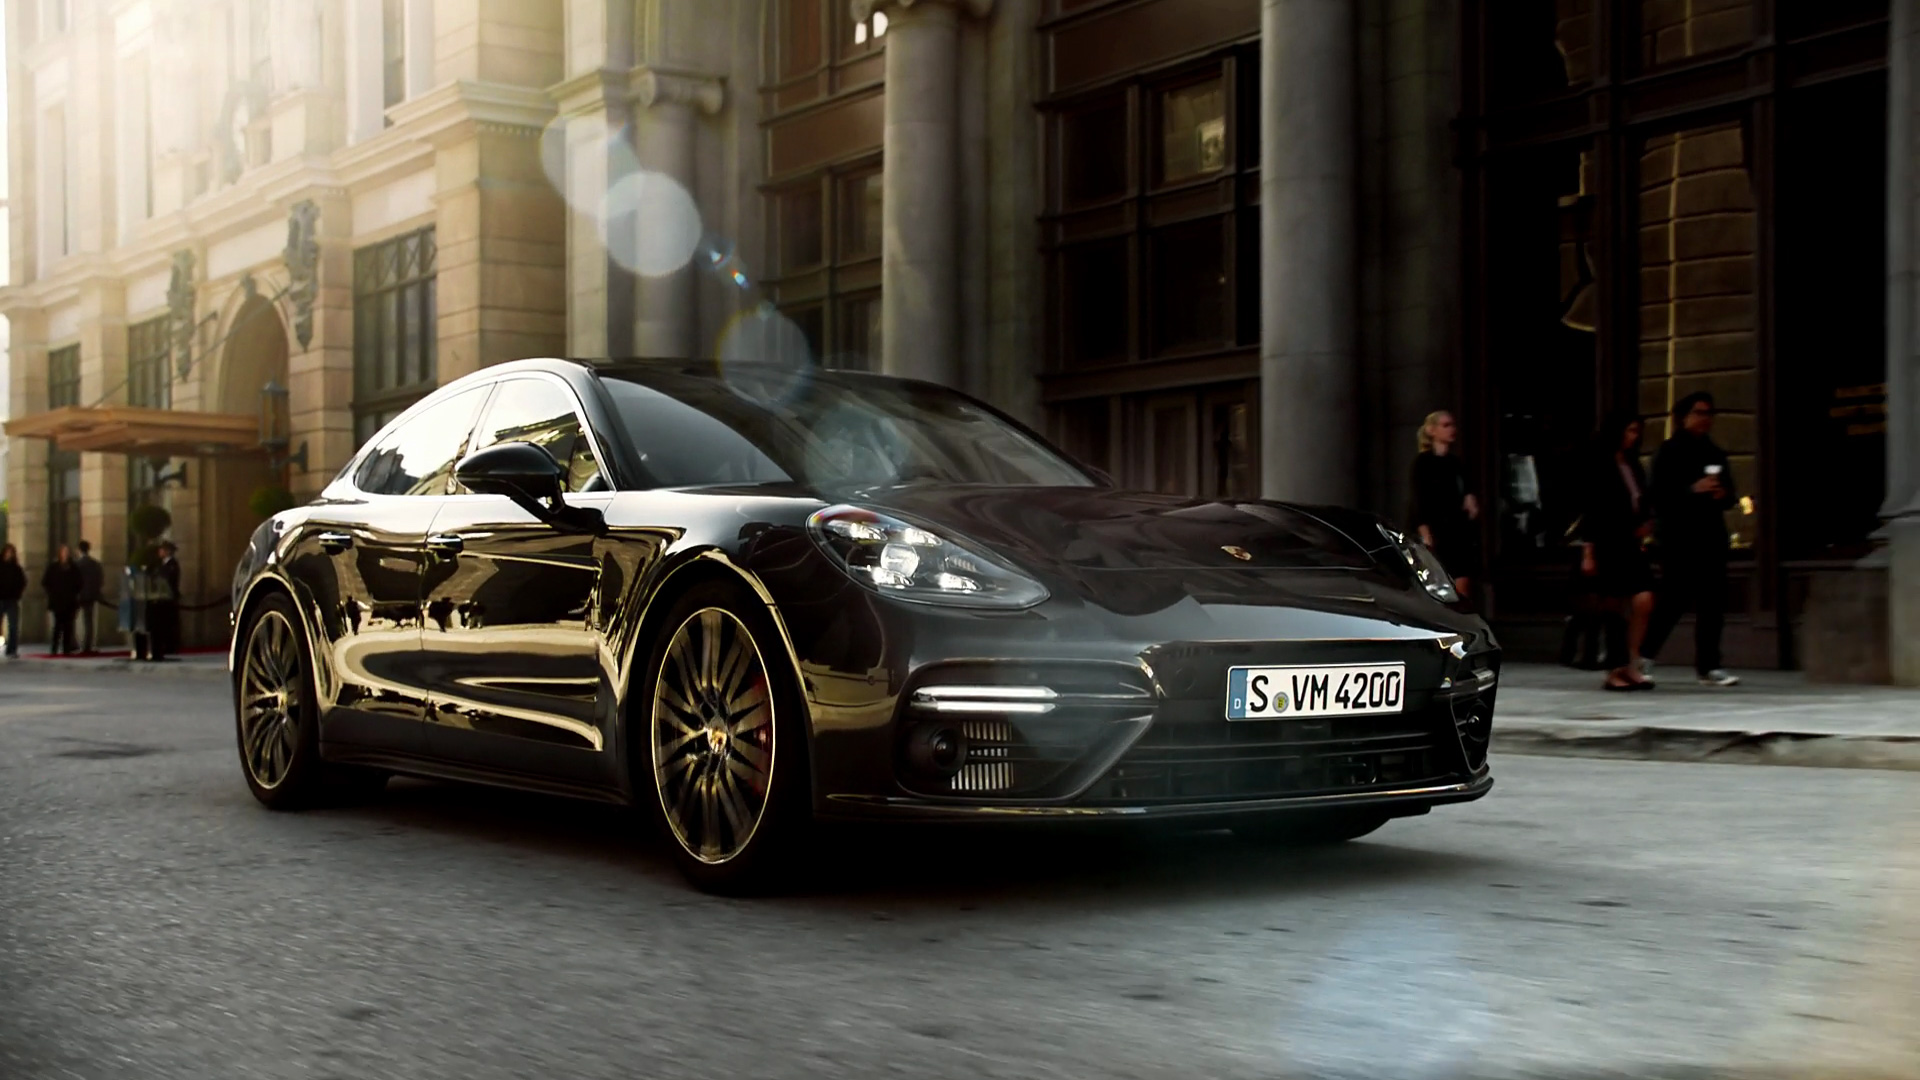 Porsche Panamera 4S - Color | Black